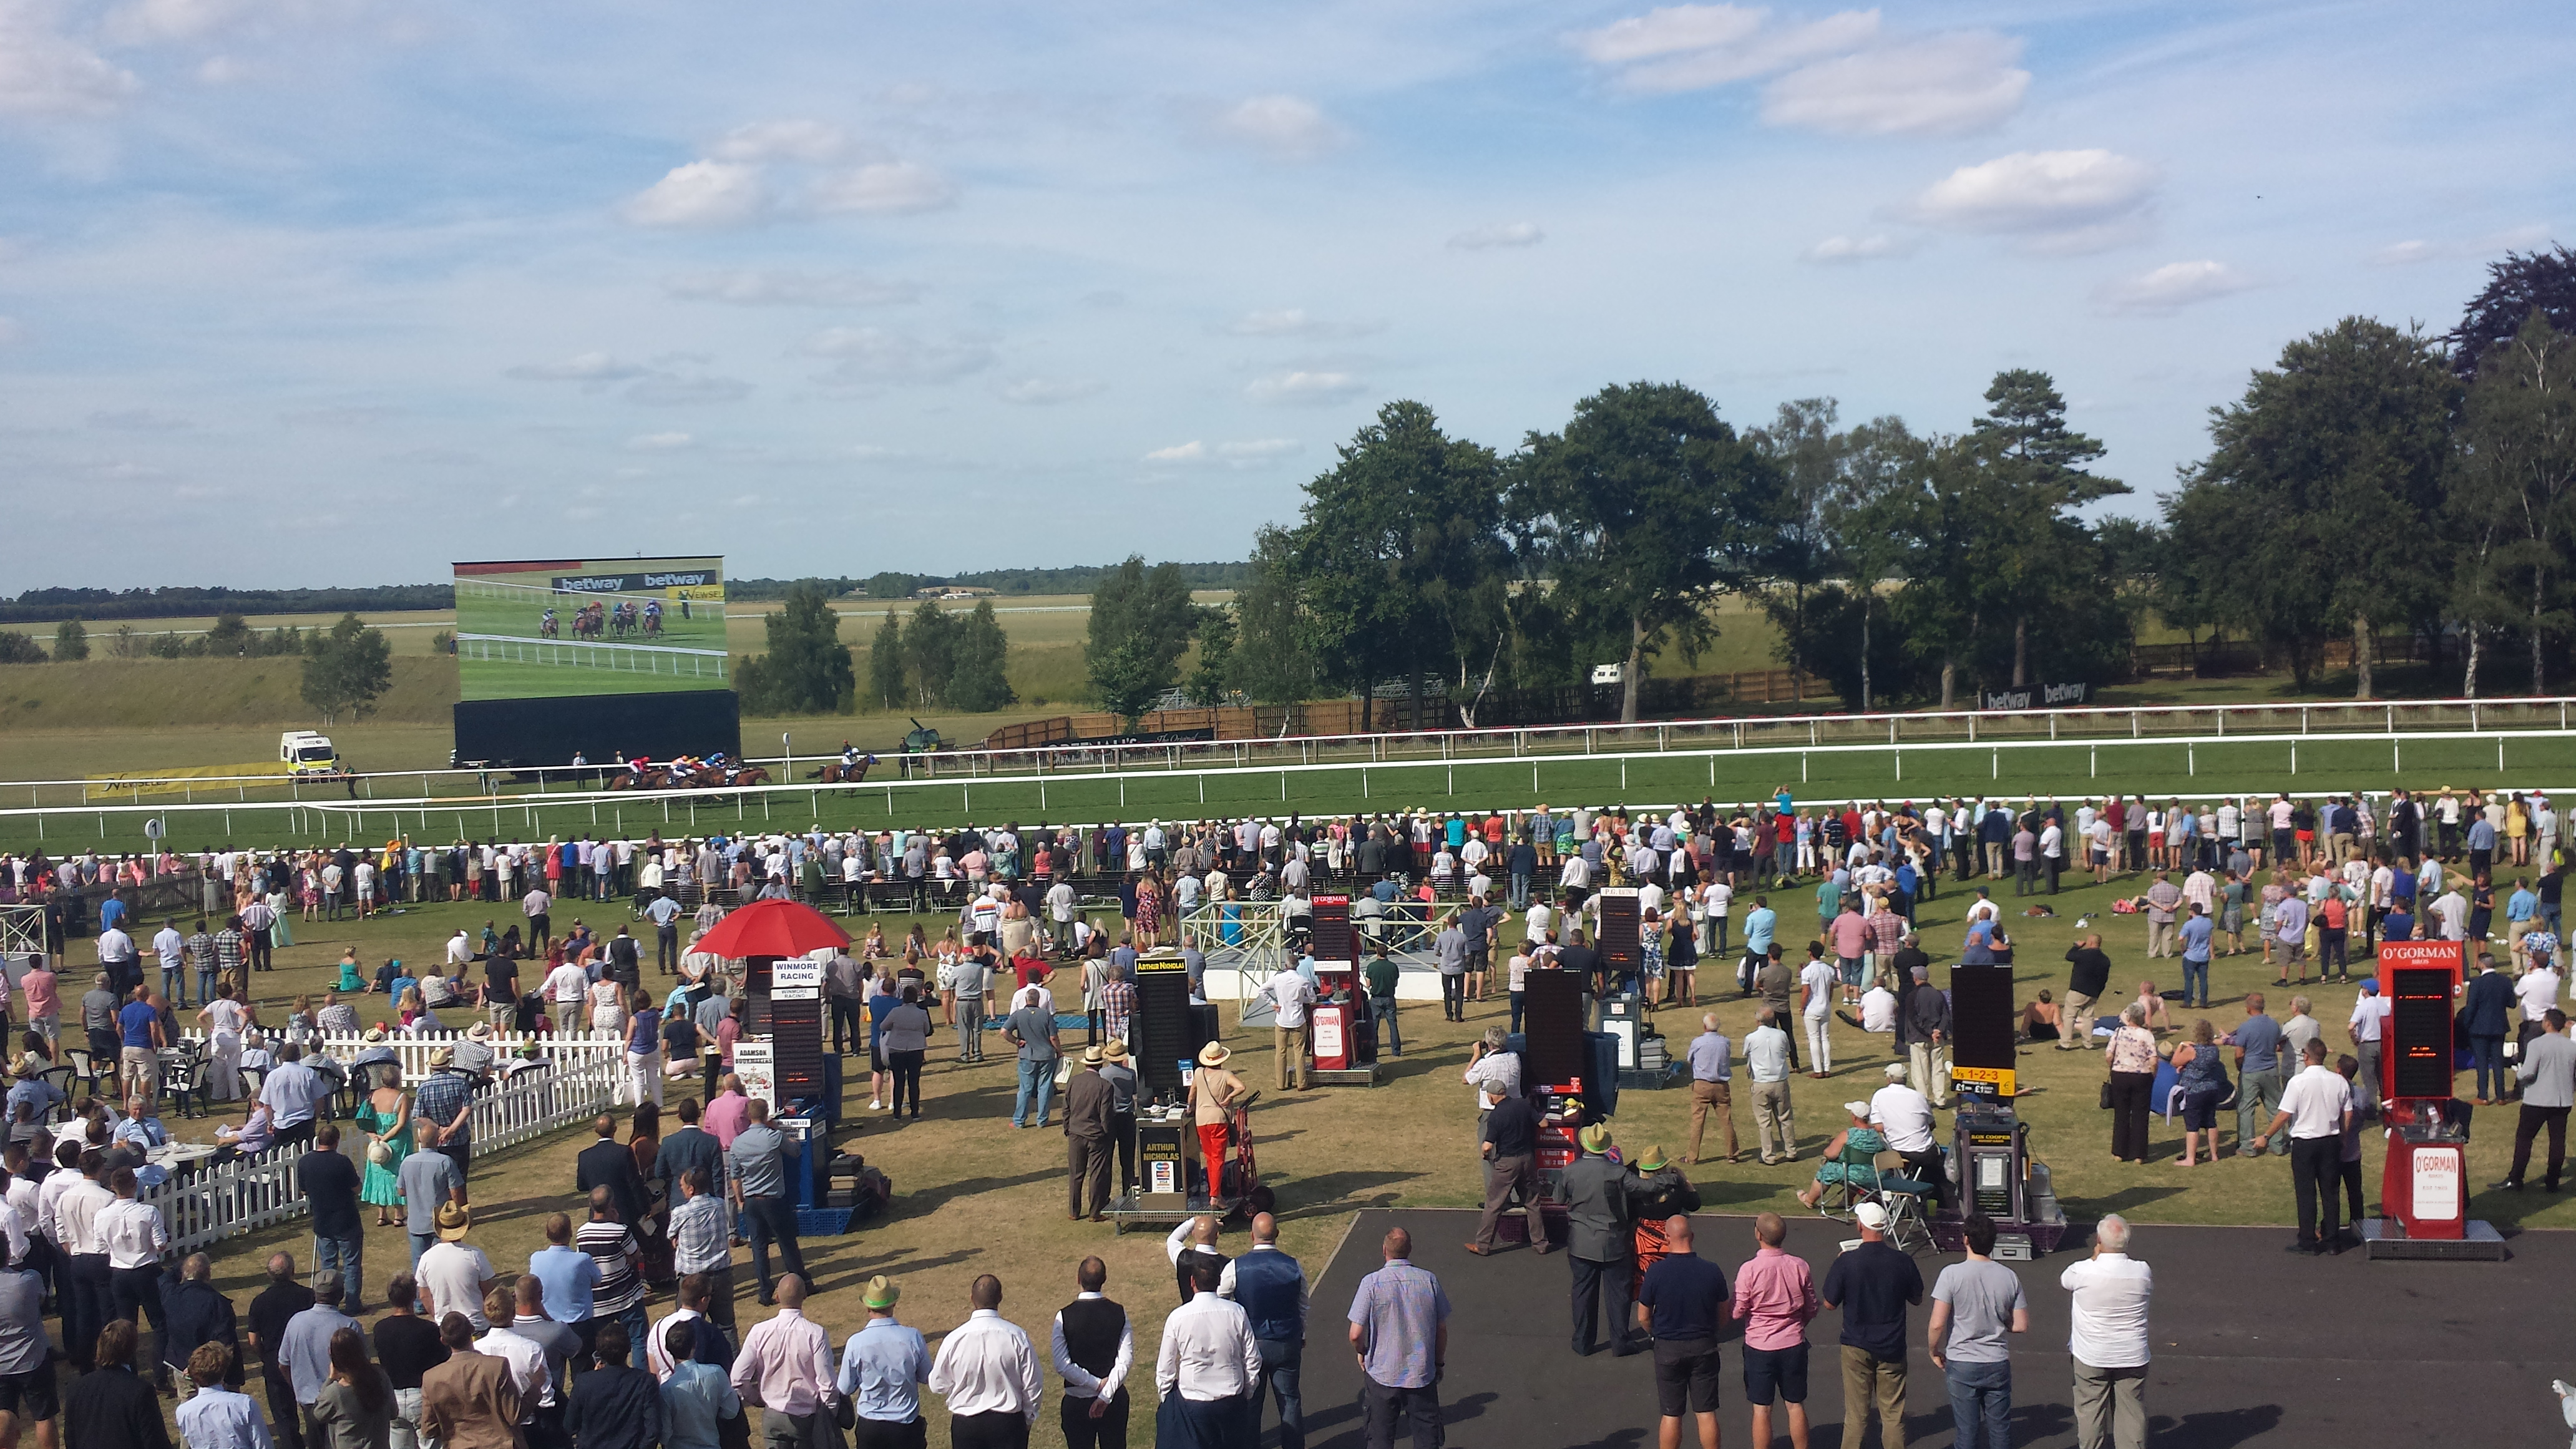 Fun summer day out at the Races